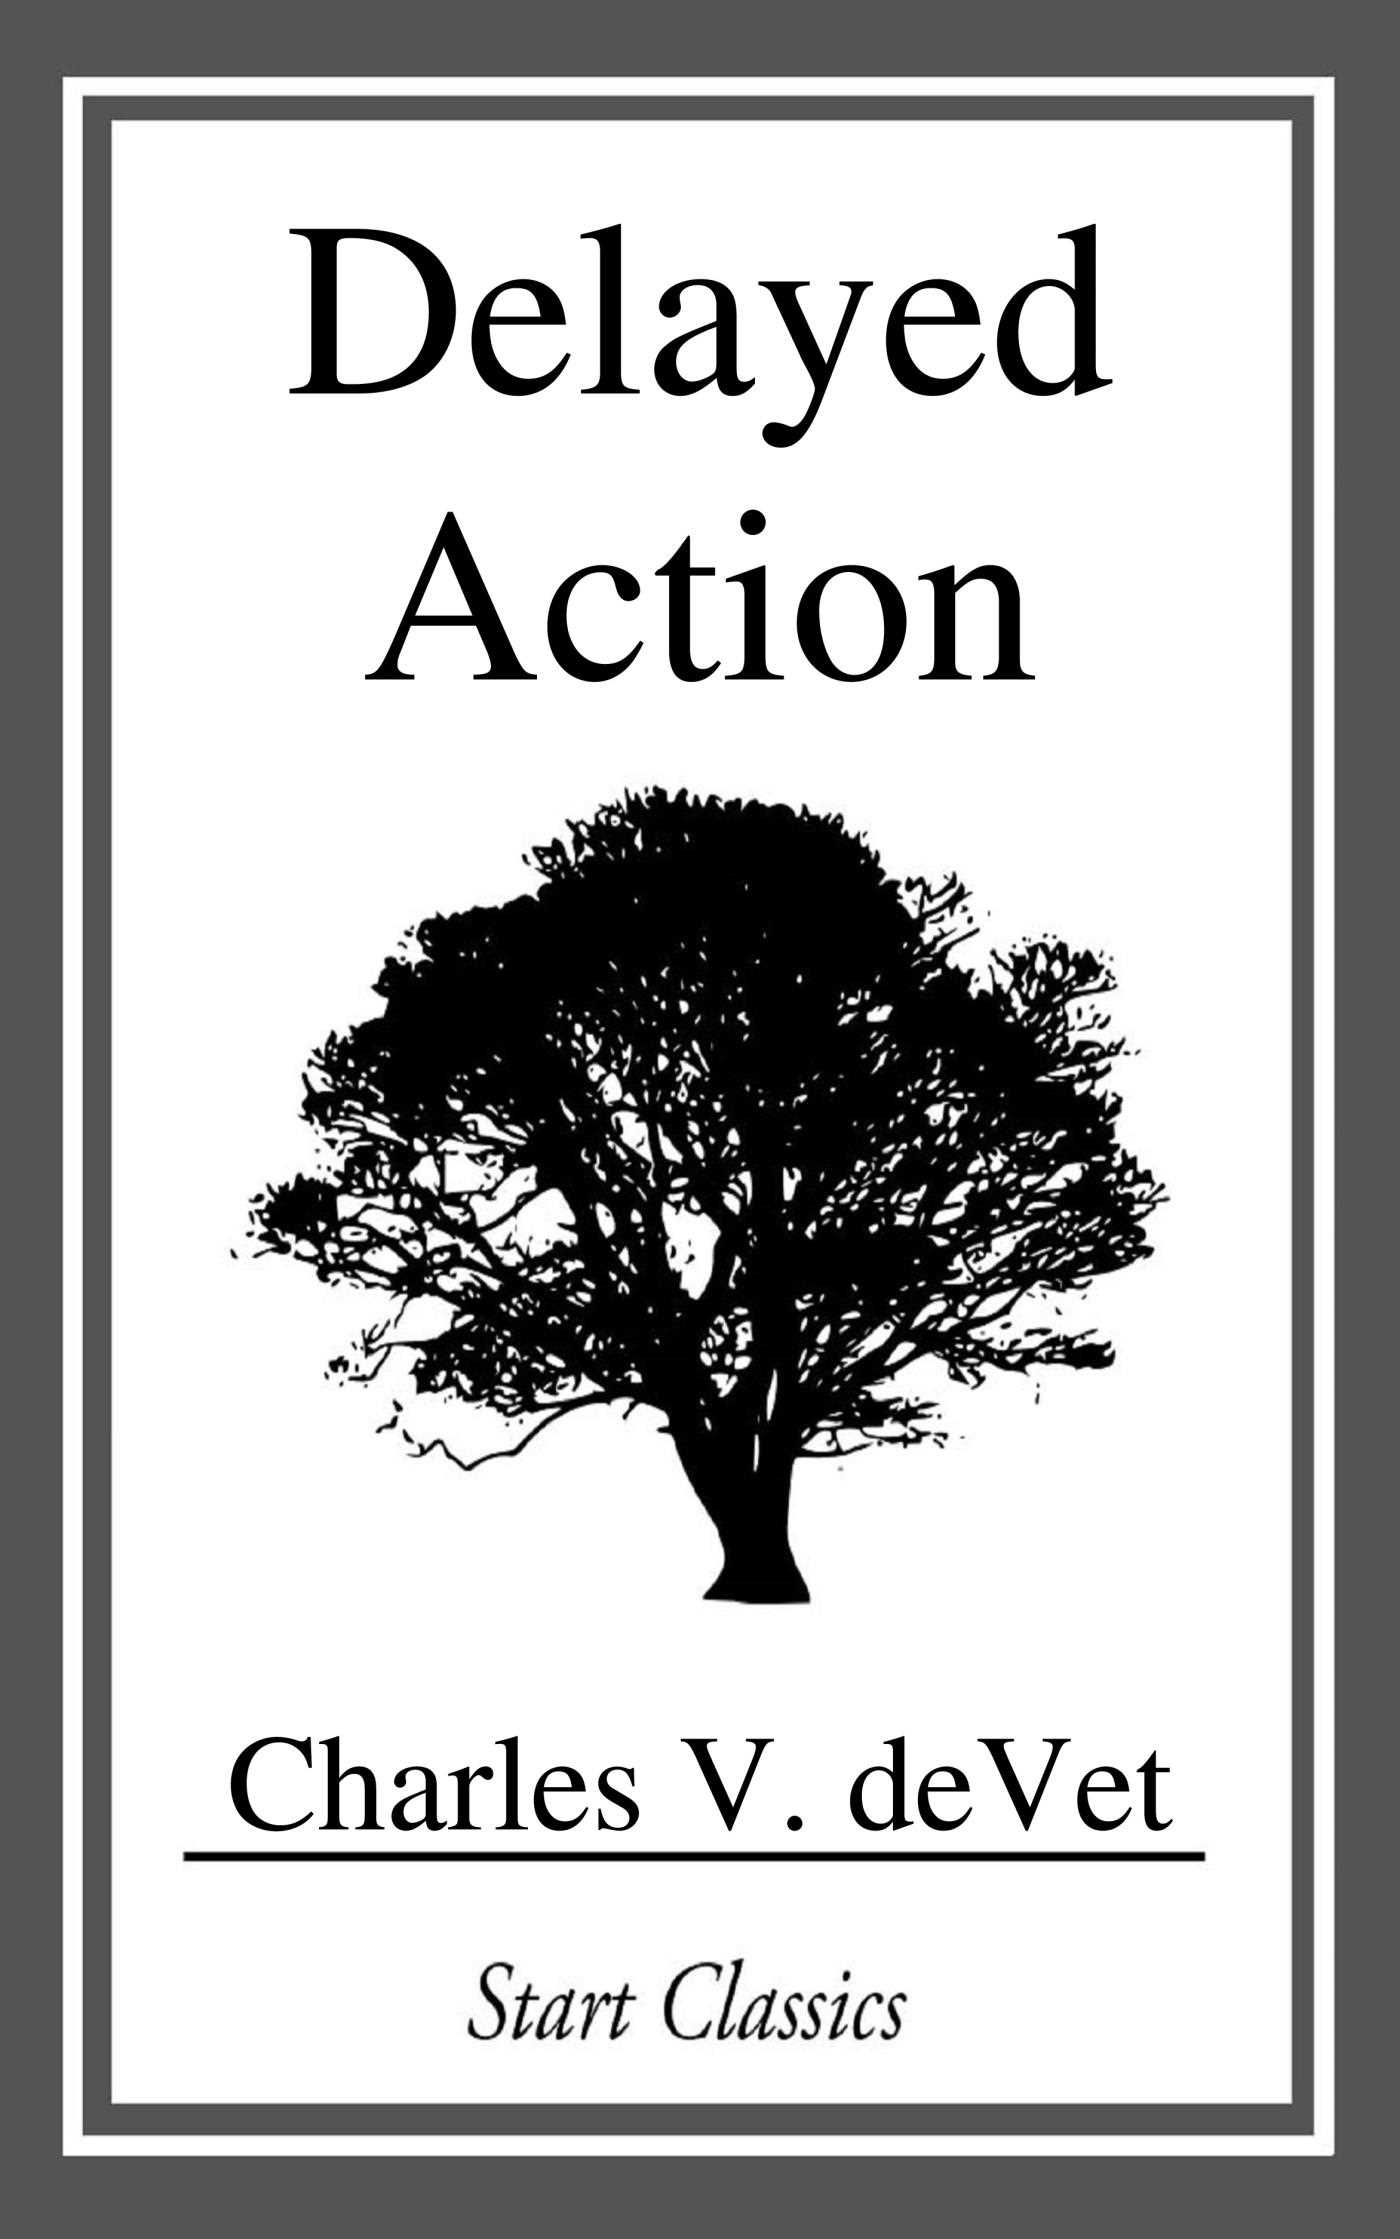 Book Cover Image (jpg): Delayed Action